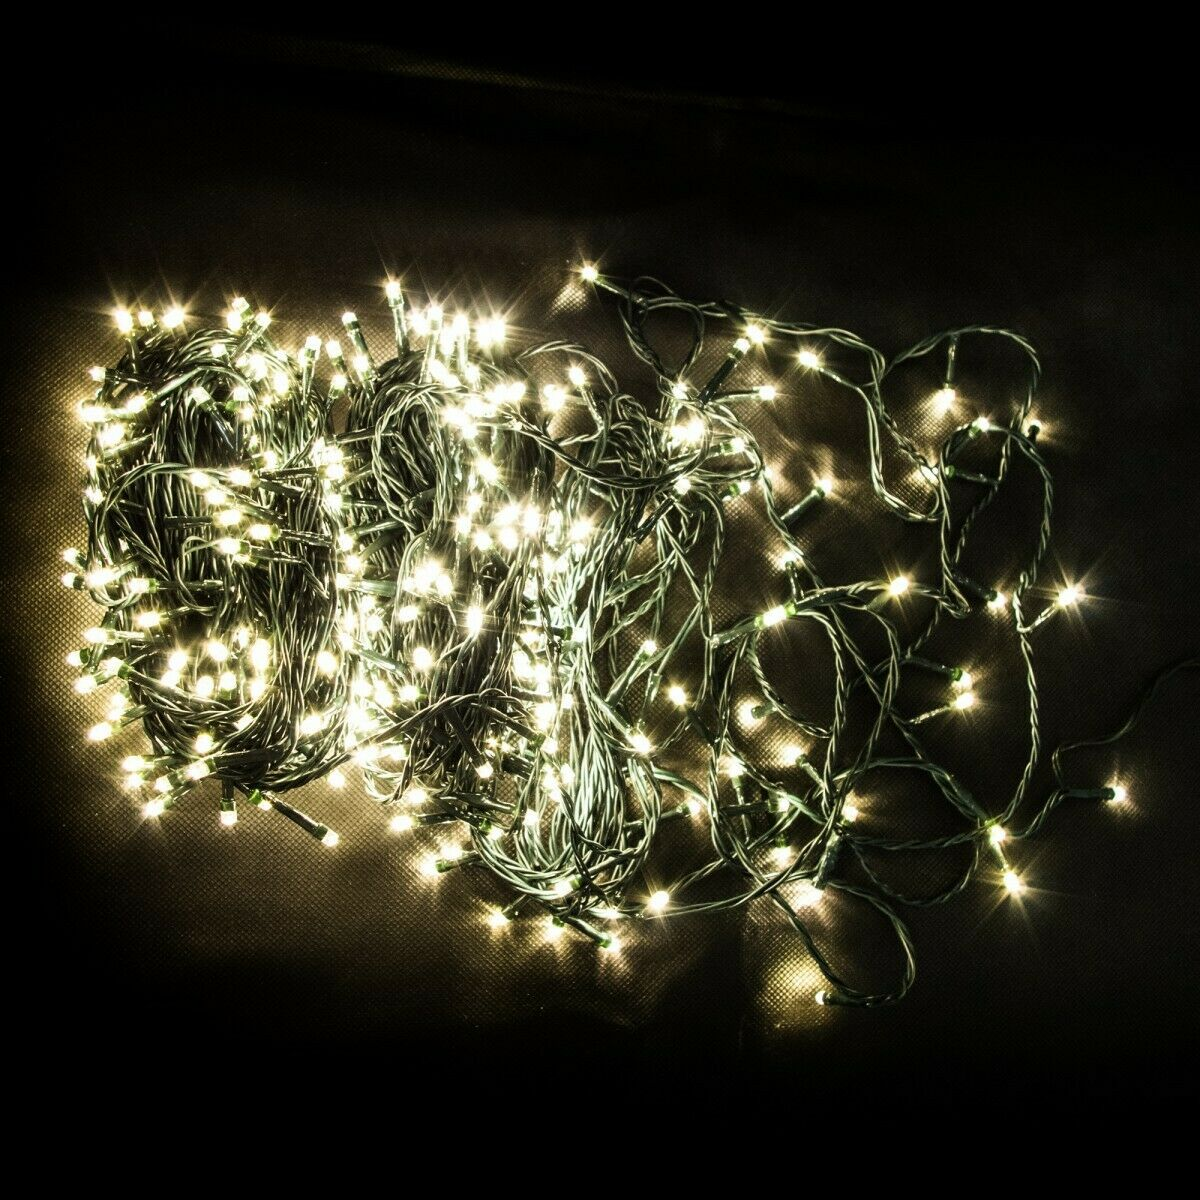 Seasonal Decorations 600er Led Lichterkette Grünes Kabel Weihnachtslichterkette Innen Außen Warmweiß Home Furniture Diy Itkart Org